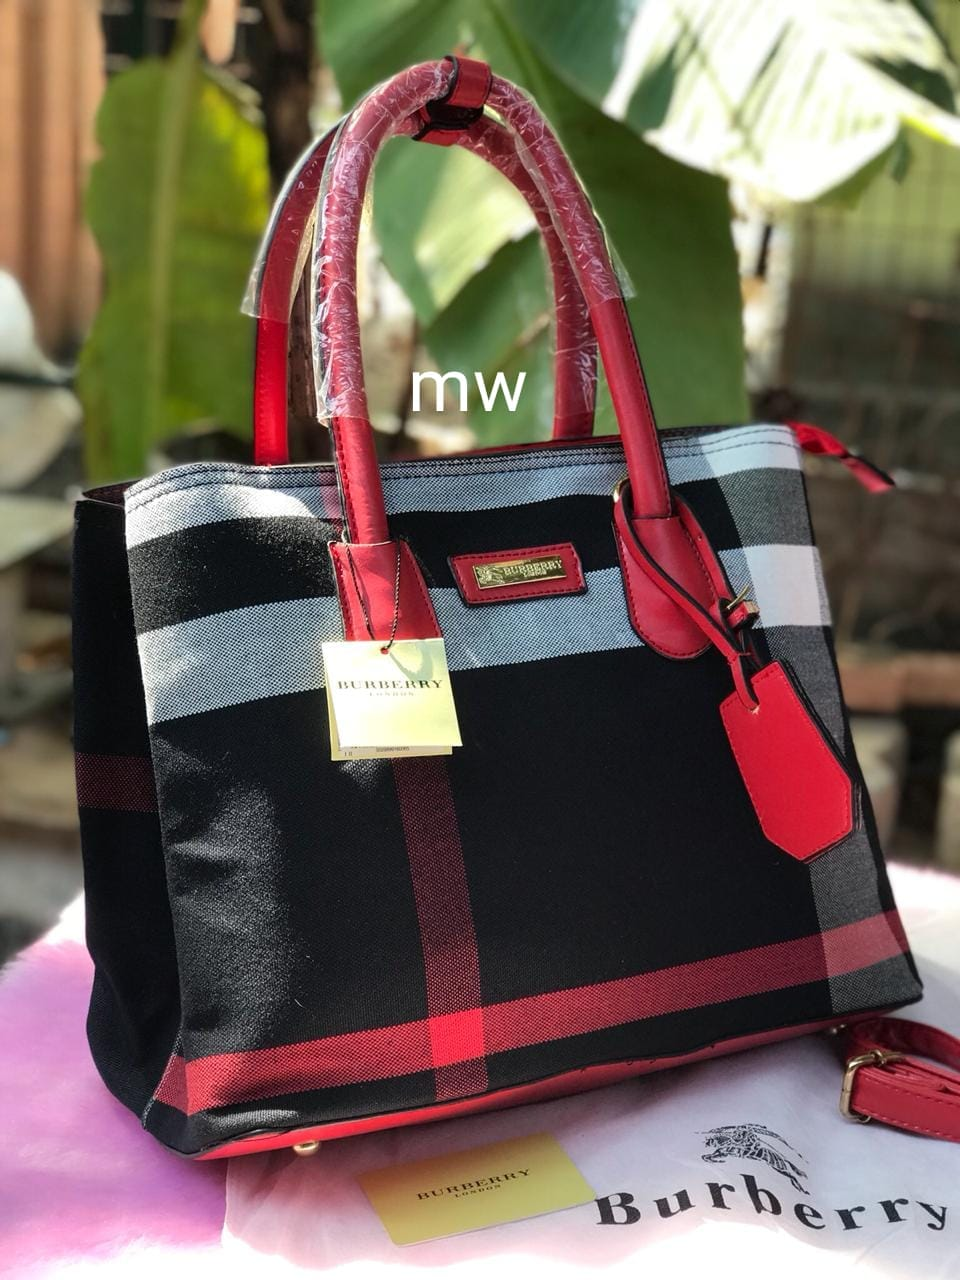 8ed5712677c1 Branded Products  Burberry Bags